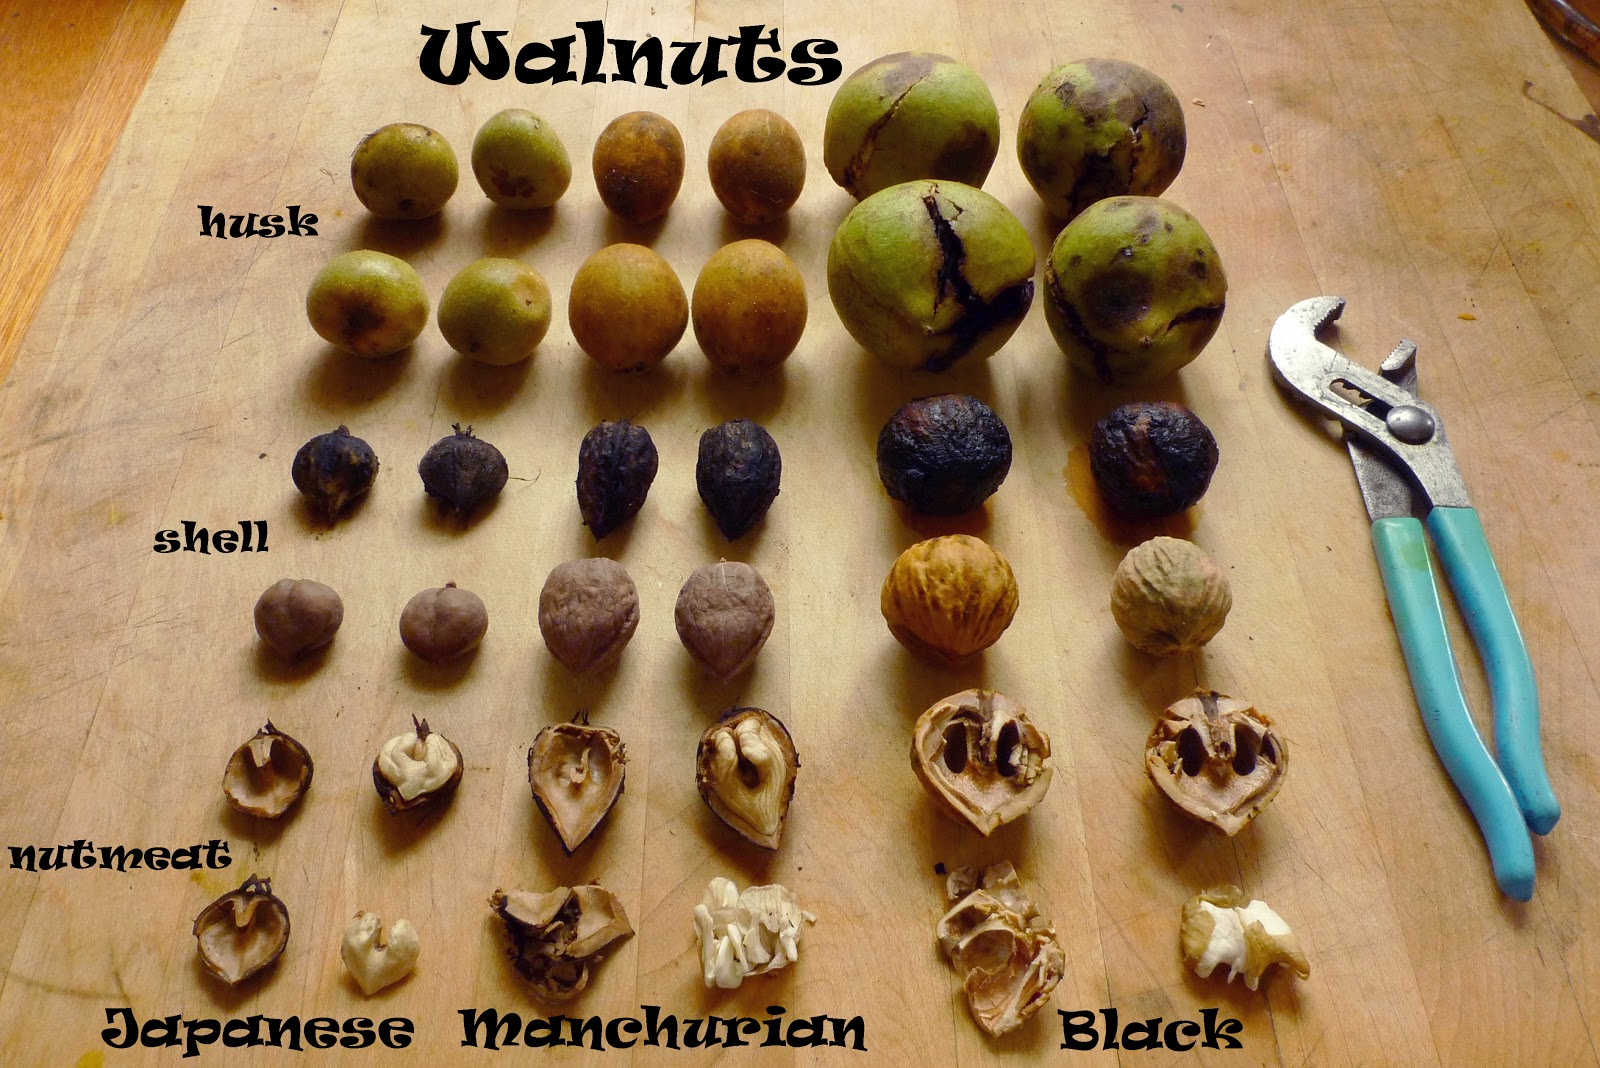 P1130139 Heartnut Manchurian Black Walnut Juglans ailantifolia mandshurica nigra Comparison rc labels1